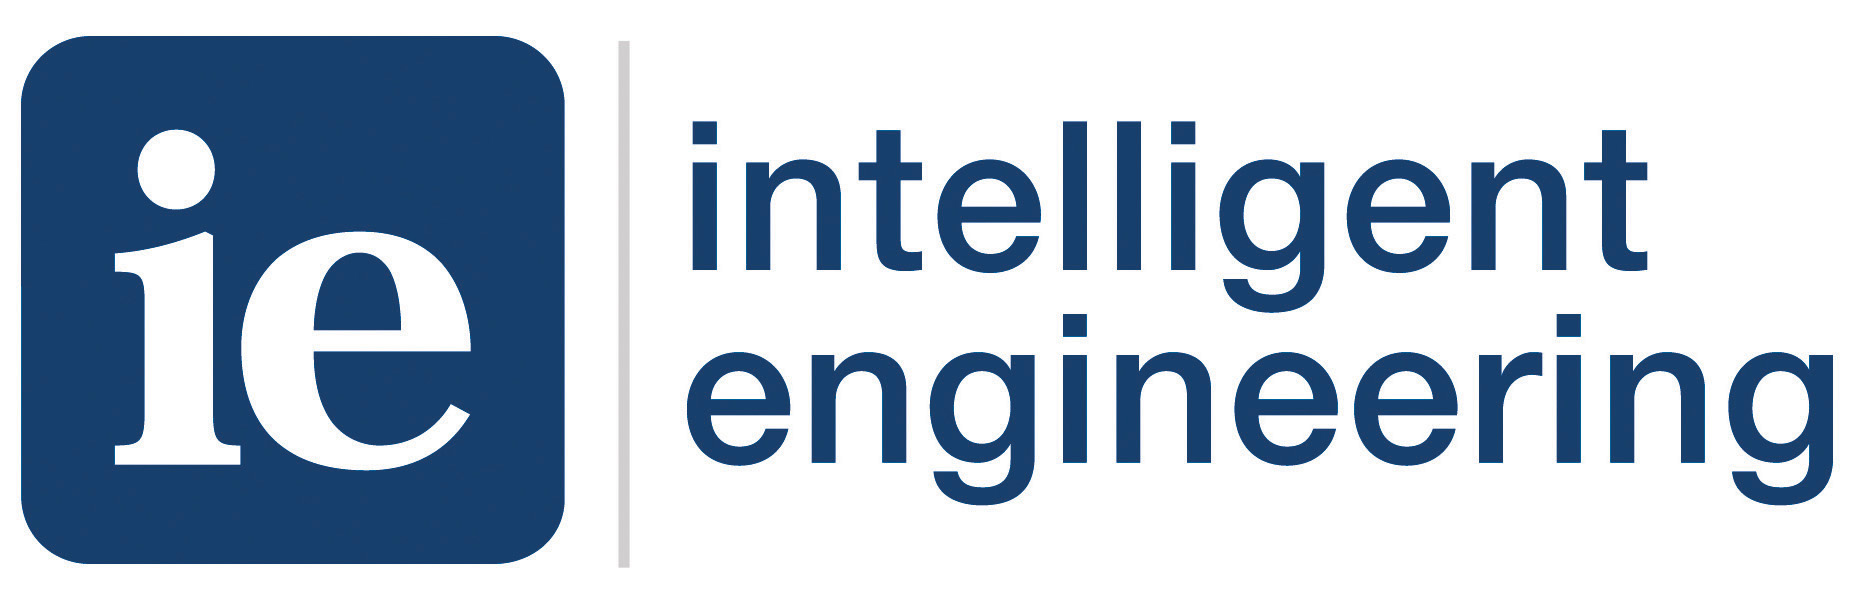 Intelligent Engineering